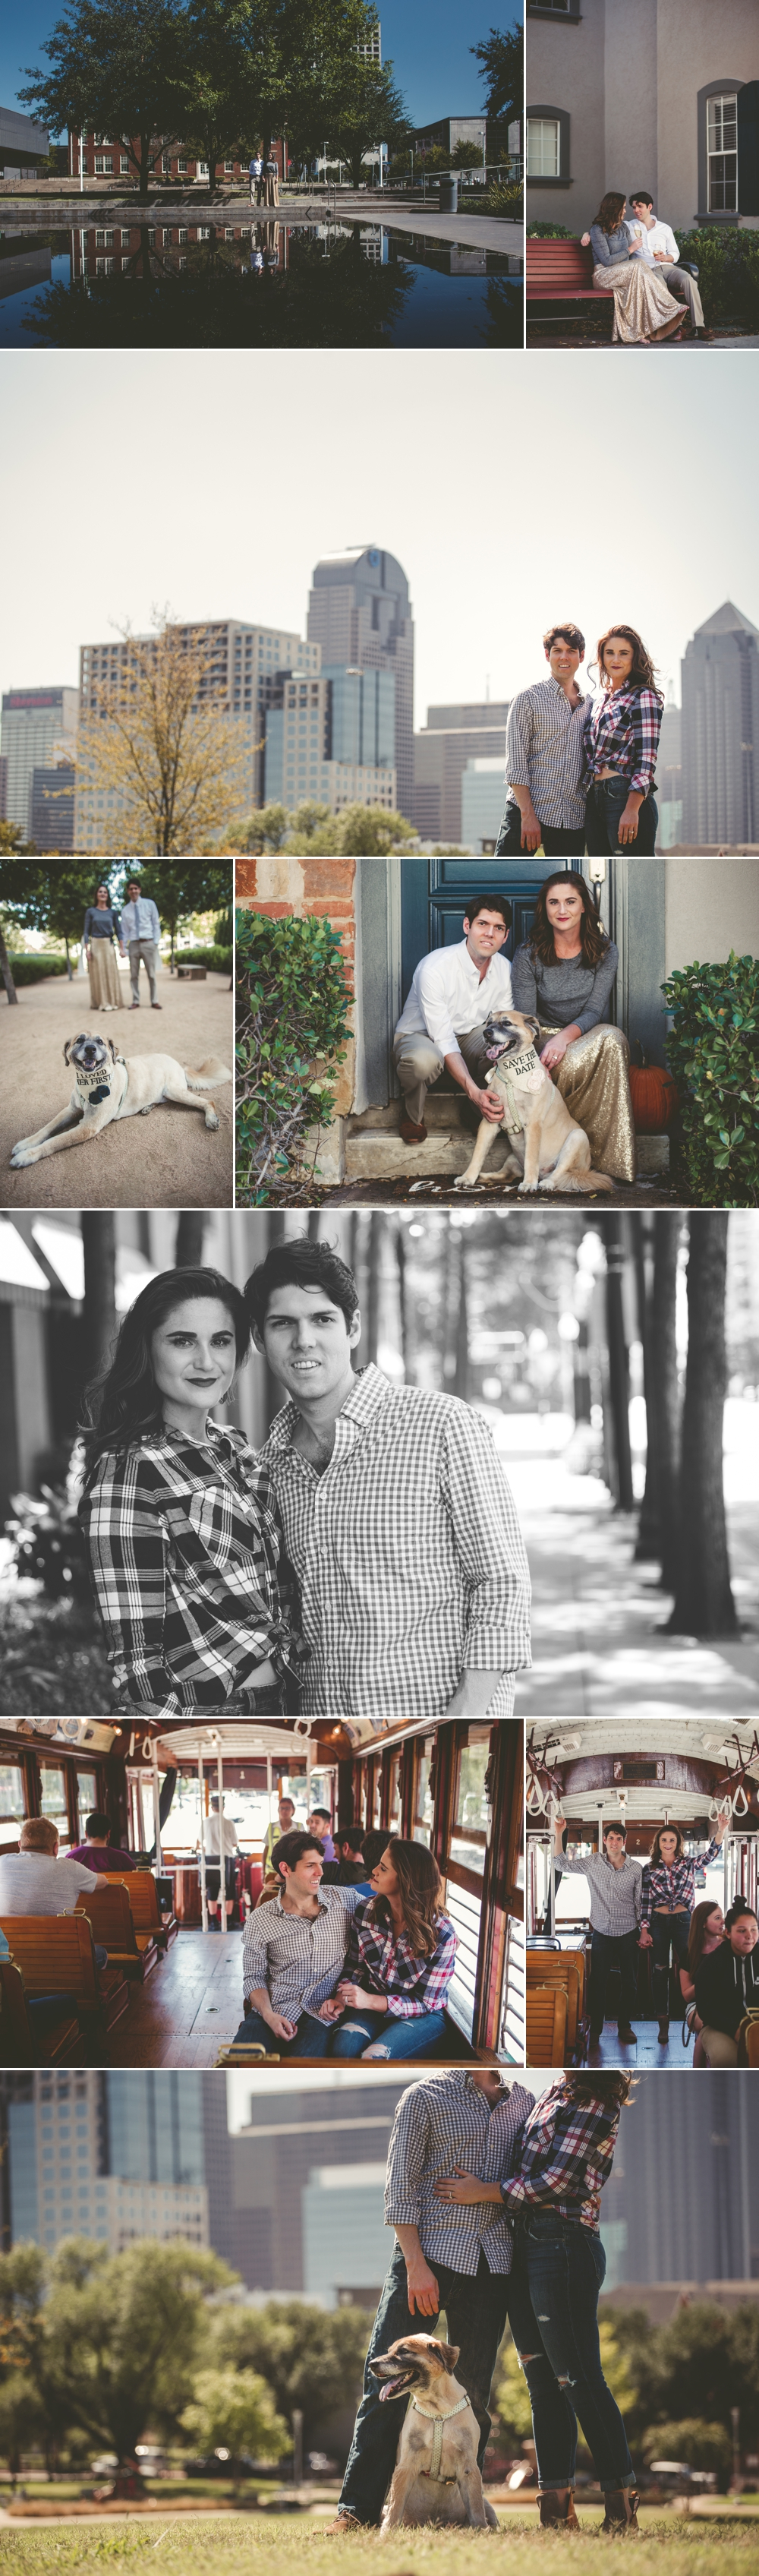 jason_domingues_photography_best_kansas_city_photographer_kc_weddings_dallas_tx_engagement_session_0002.JPG